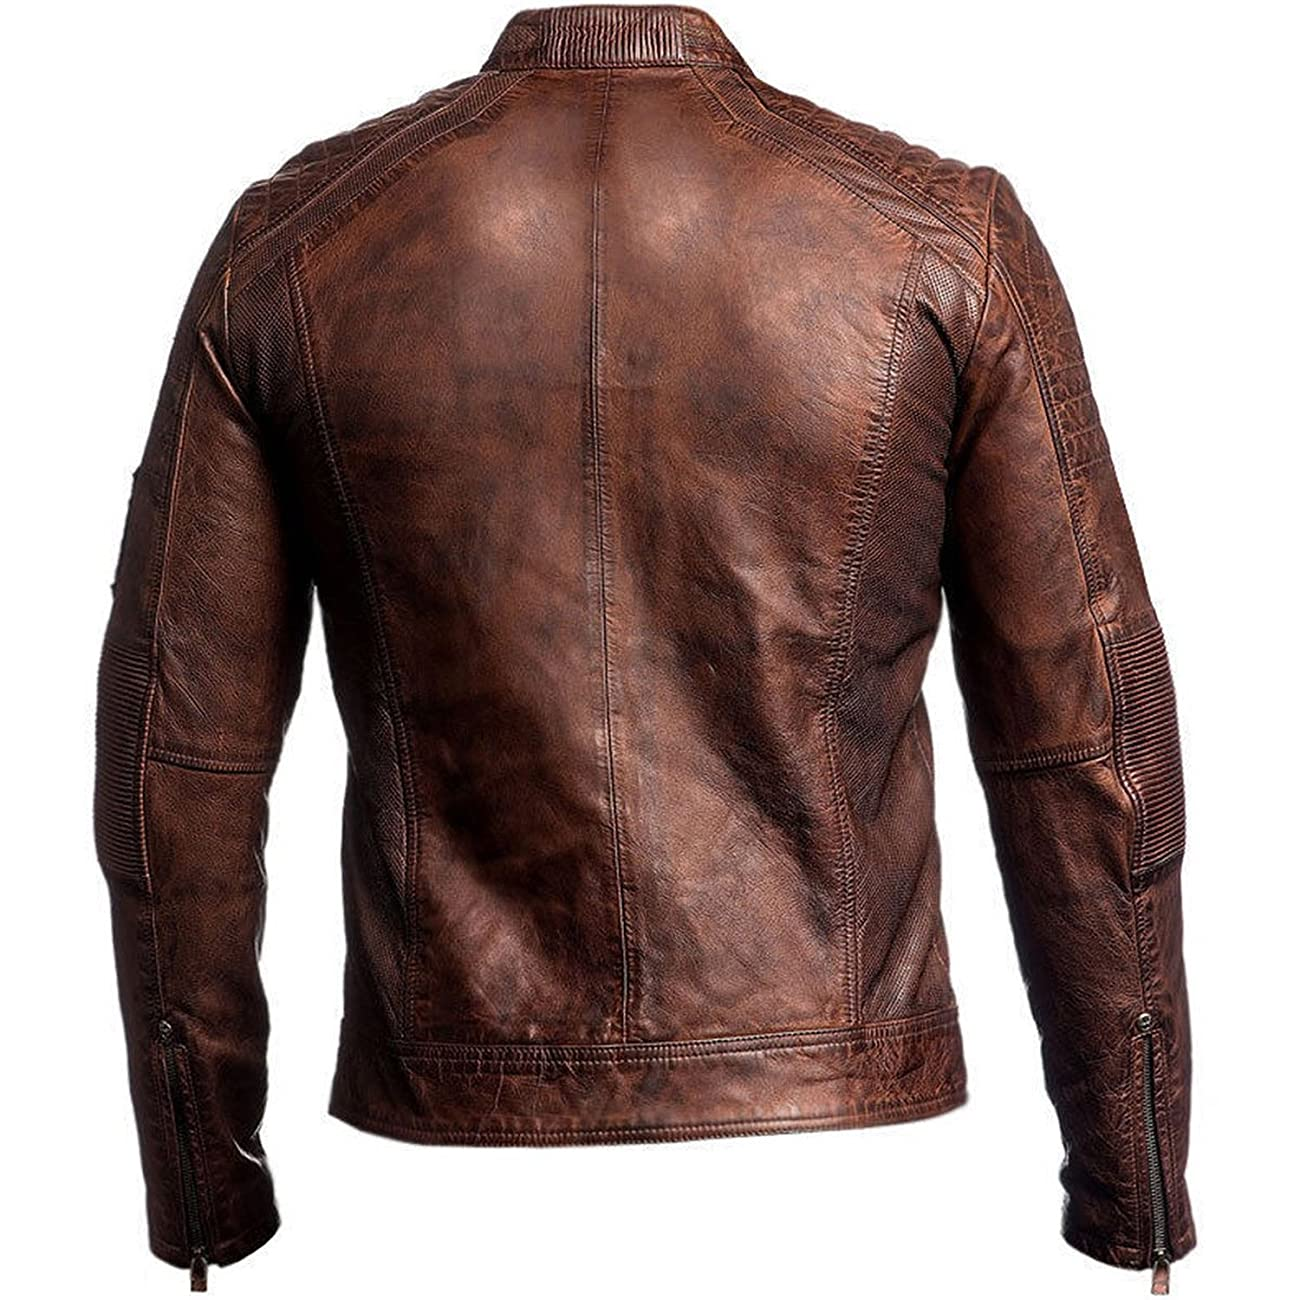 Men's Biker Vintage Motorcycle Distressed Brown Cafe Racer Leather Jacket 2